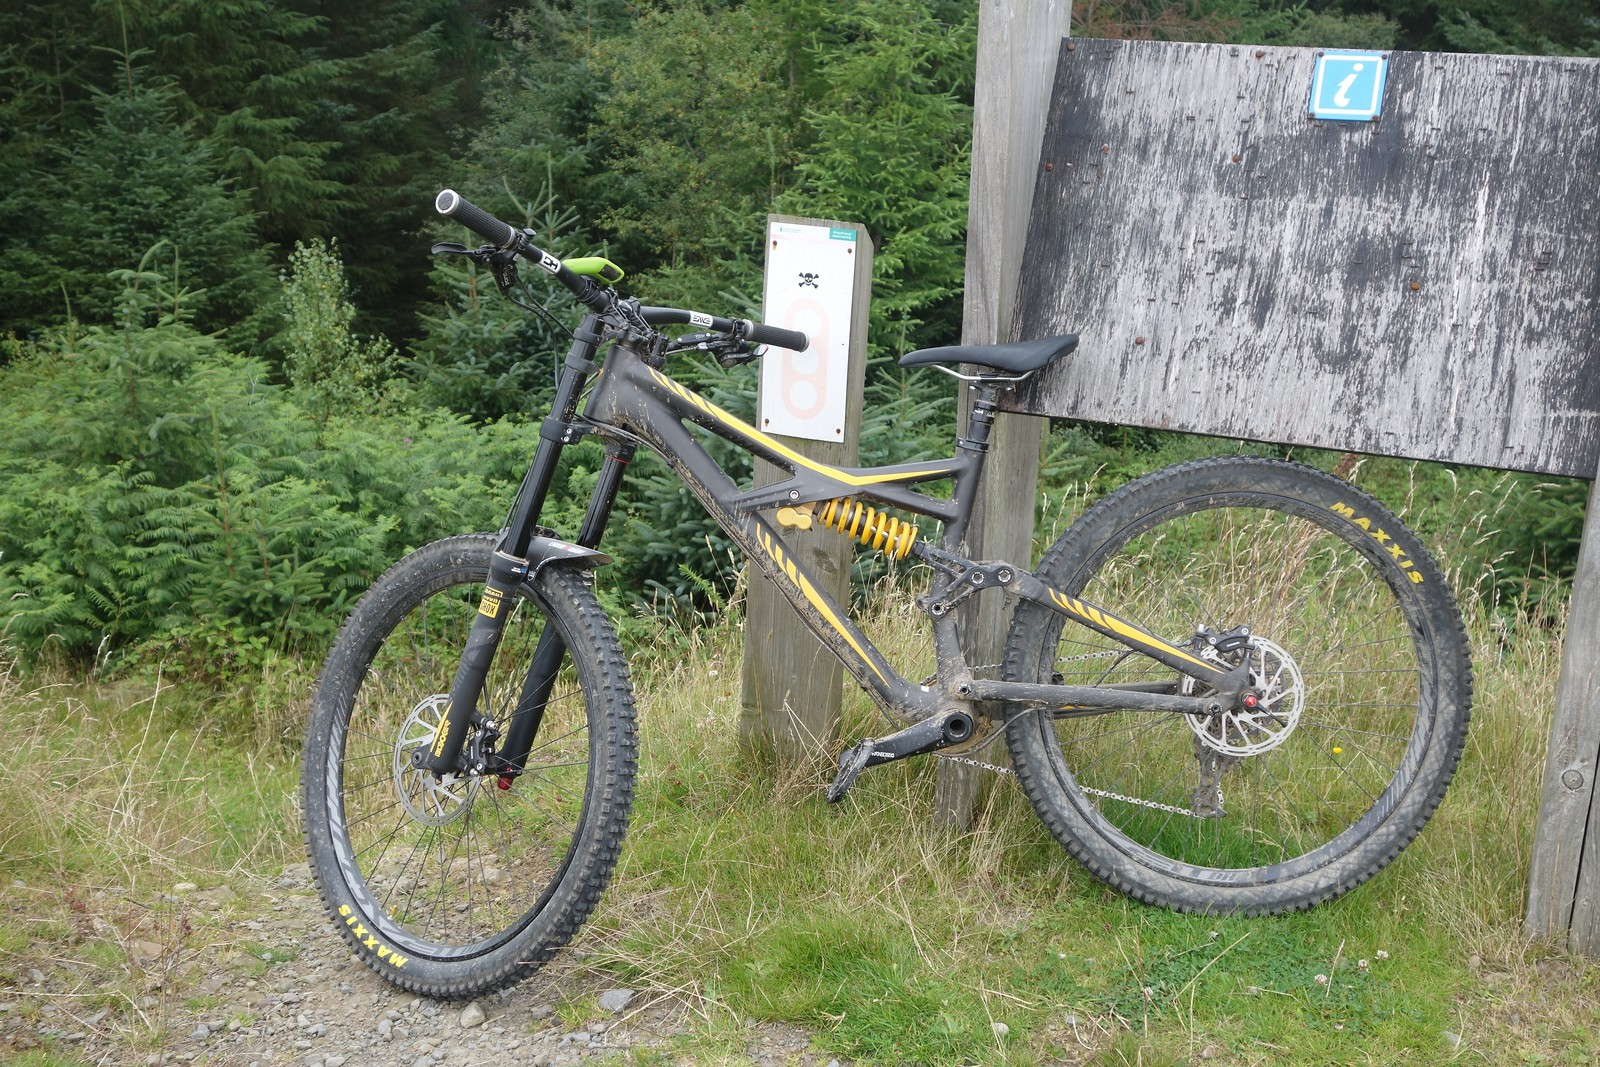 If you ride Cwmcarn, then you know that the Y Mynydd side of the valley is no longer uplifted due to the Larch felling. #noupliftnoproblem on this bike! We ride to the top to enjoy one of my favorite trails.